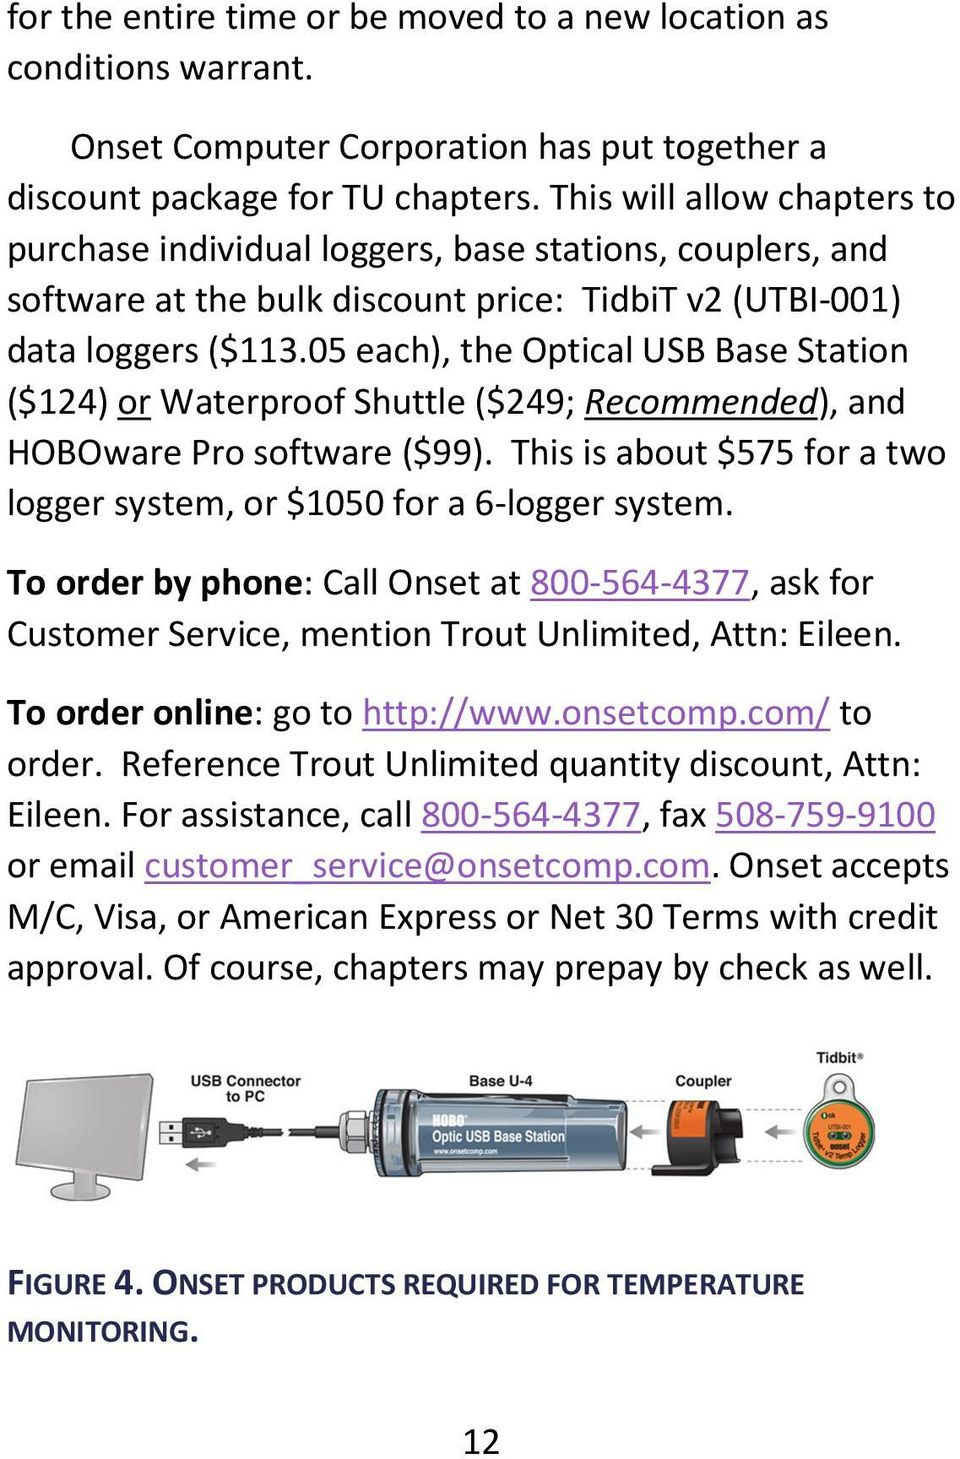 05 each), the Optical USB Base Station ($124) or Waterproof Shuttle ($249; Recommended), and HOBOware Pro software ($99). This is about $575 for a two logger system, or $1050 for a 6-logger system.